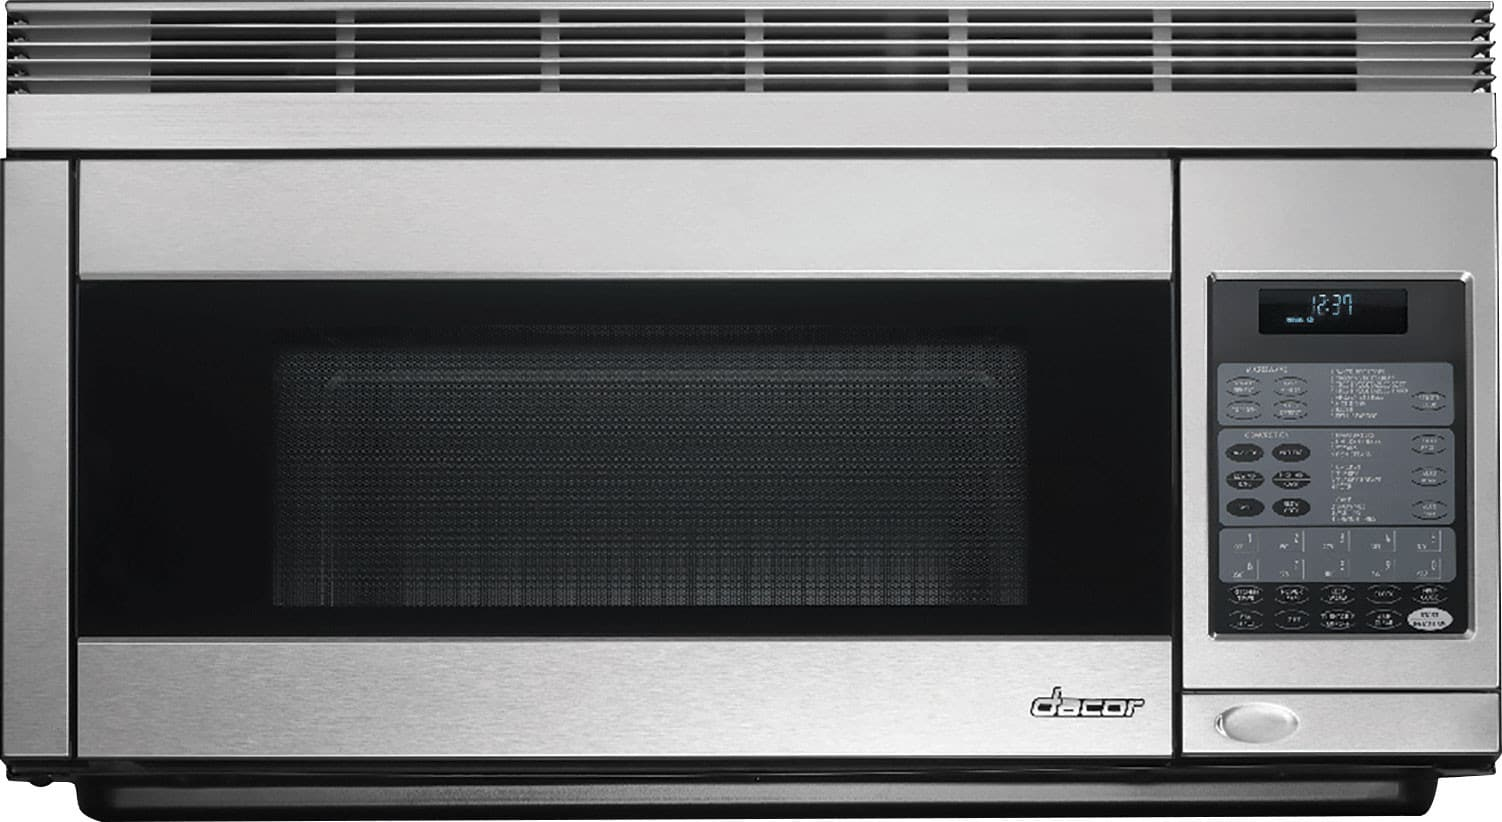 Dacor pcor30s 1 1 cu ft over the range convection - How to vent a microwave on an interior wall ...